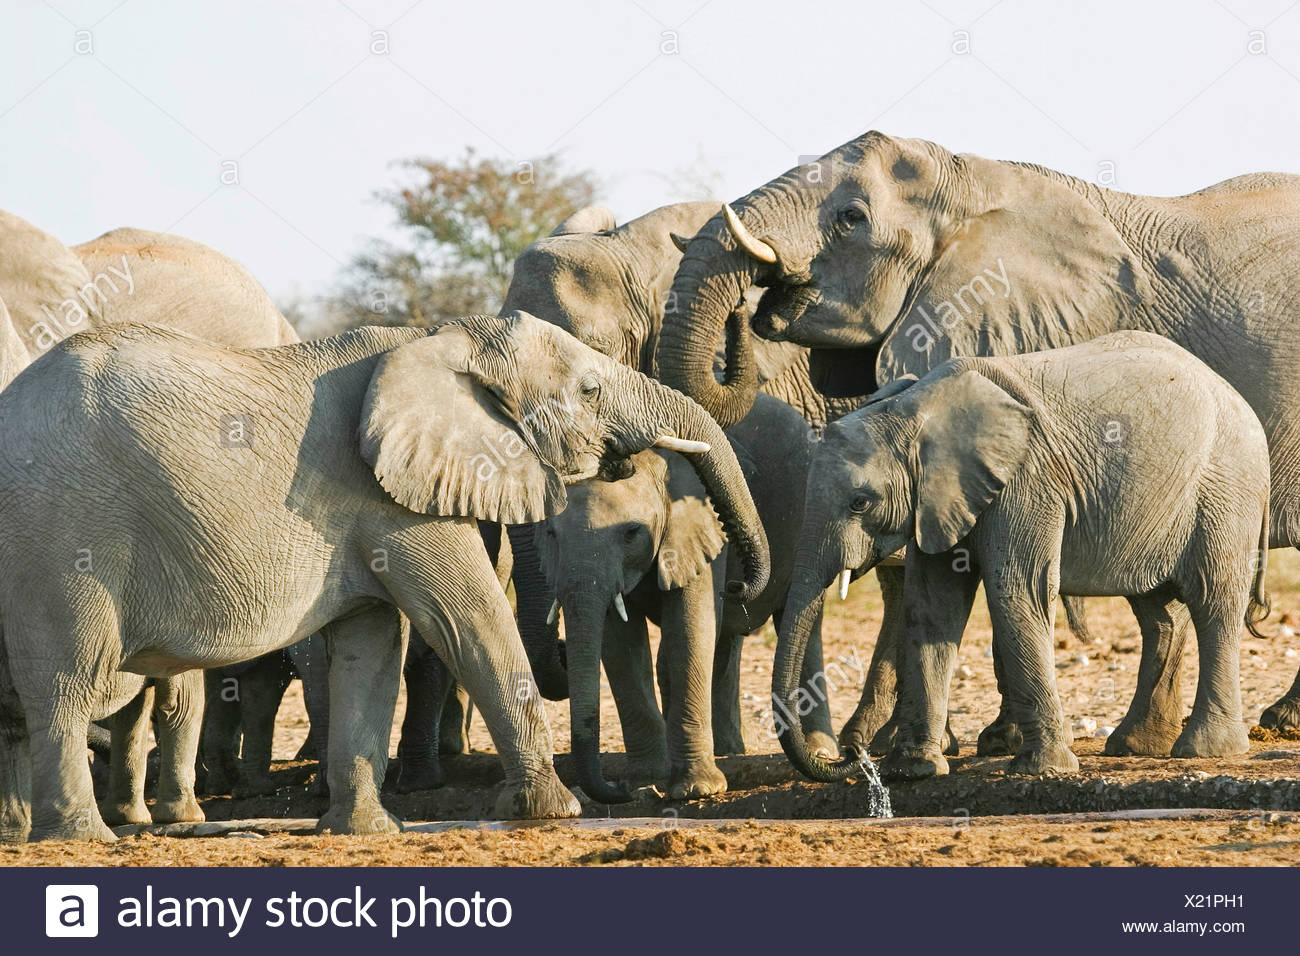 Elephant herd (Loxodonta africana) at waterhole, Etosha National Park, Namibia, Africa Stock Photo